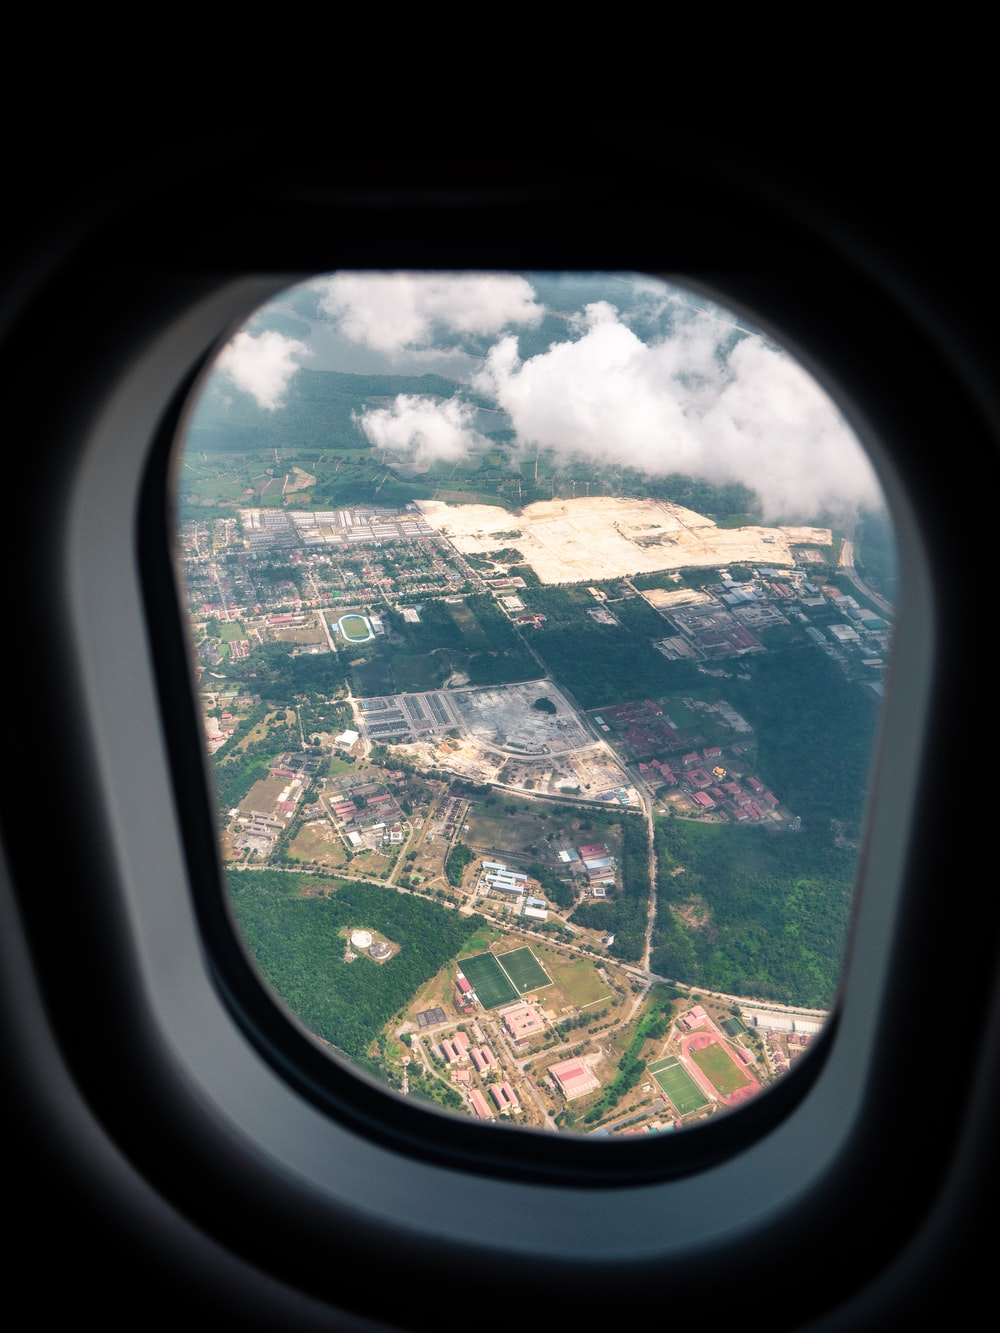 aerial photography of rural area through plane window